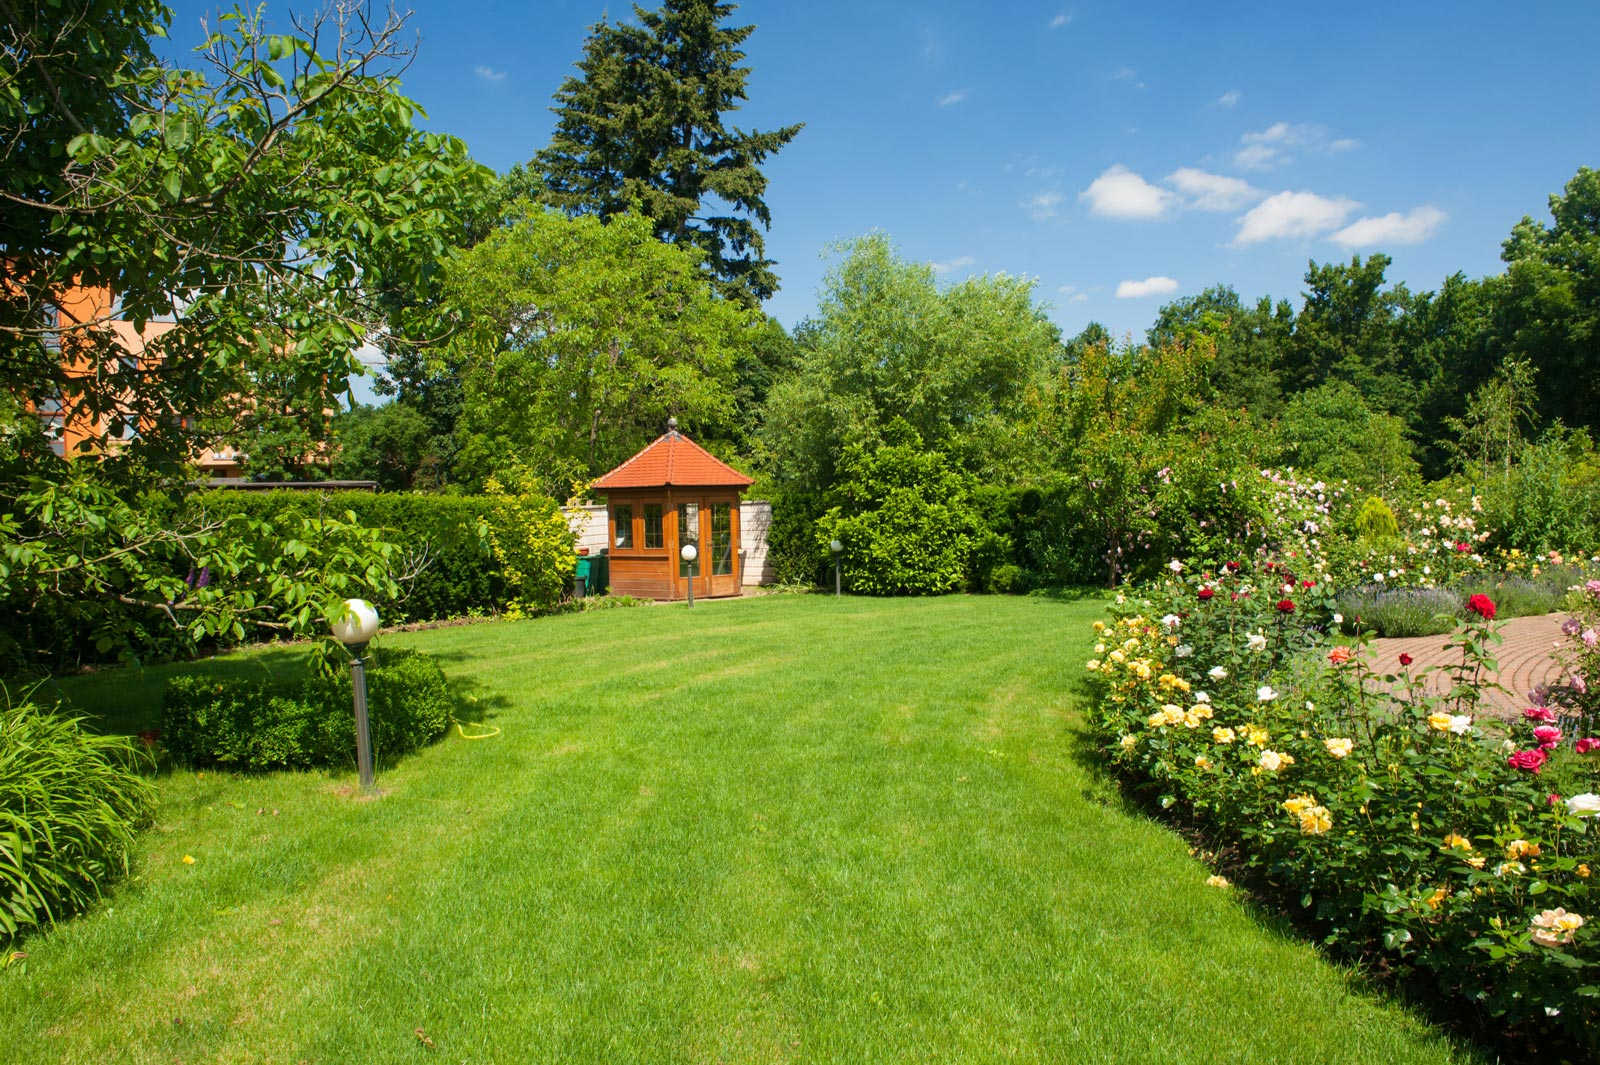 Garden with Shed